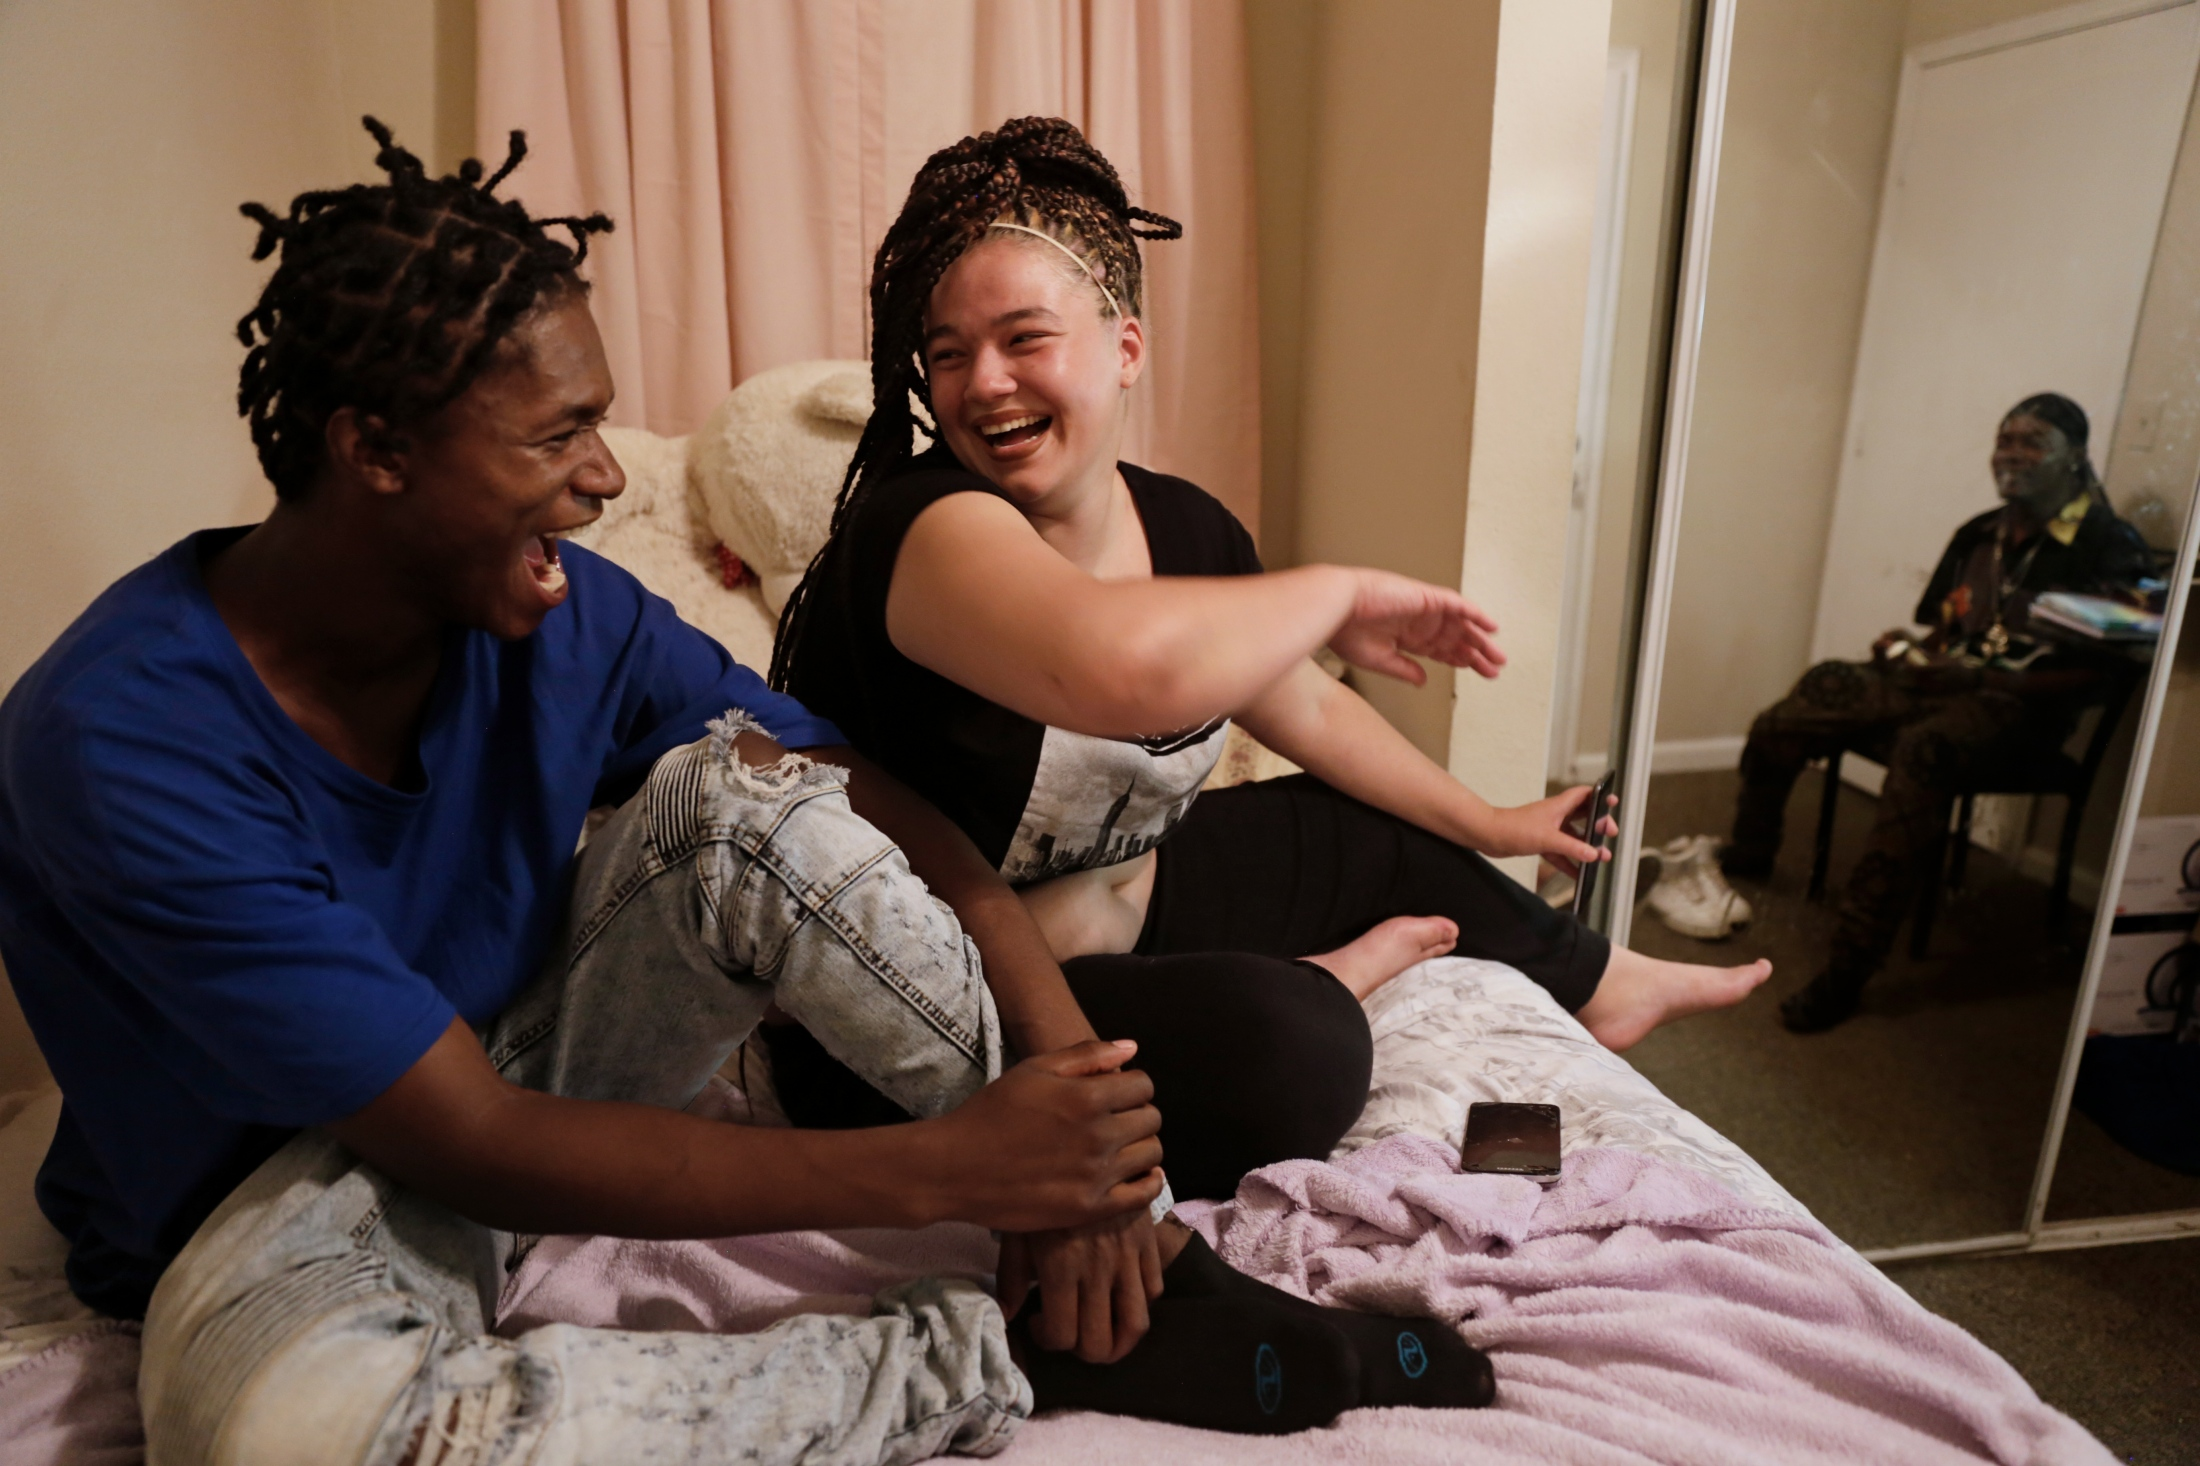 Tyrese Ross, Jasmine Fields and Jamorris Mosely gossip in Jasmine's new room at a student housing complex that a Going Places caseworker helped her procure.